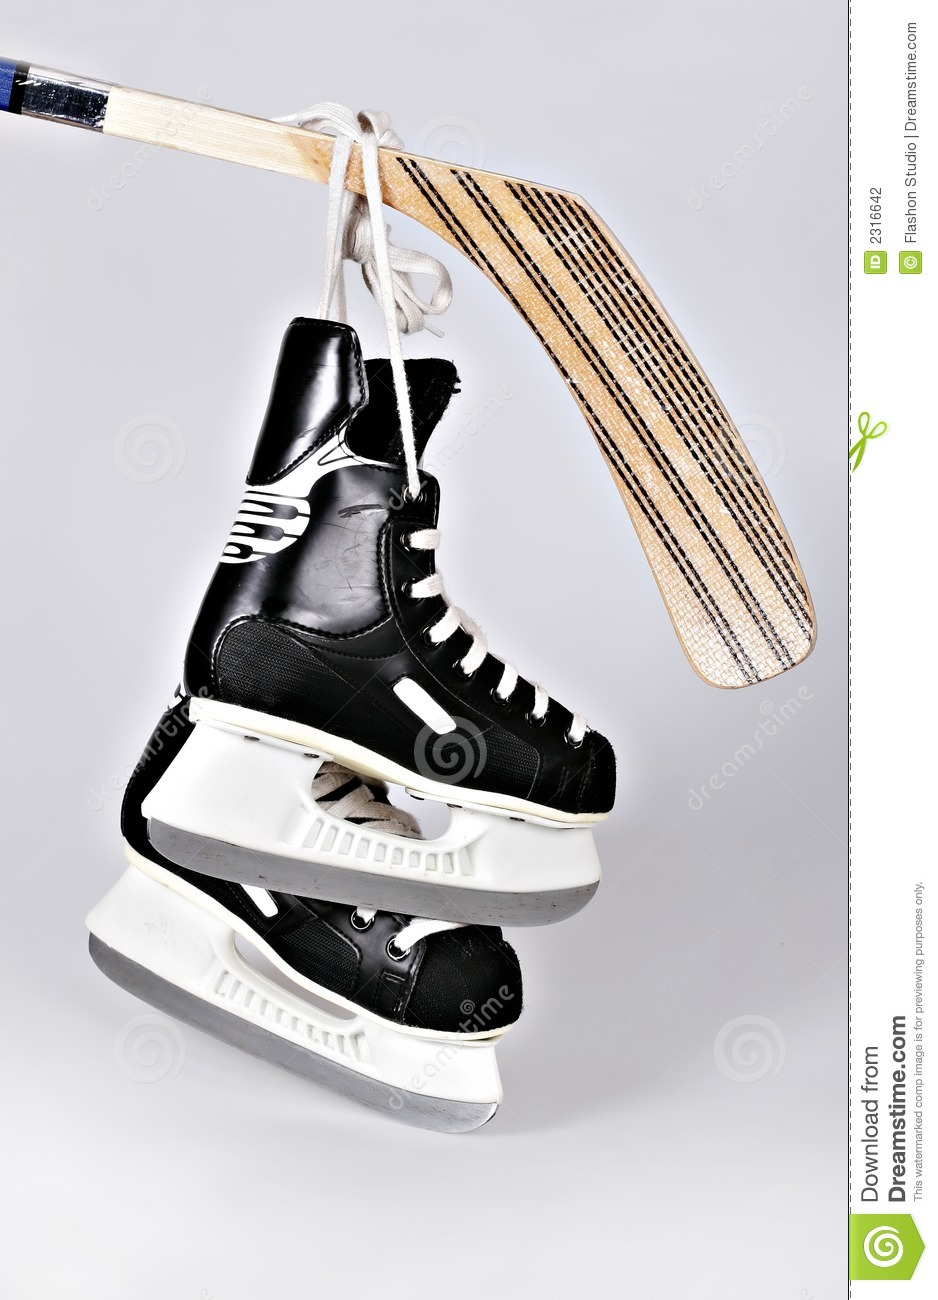 Hokey Skates And Stick Stock Photography Image 2316642